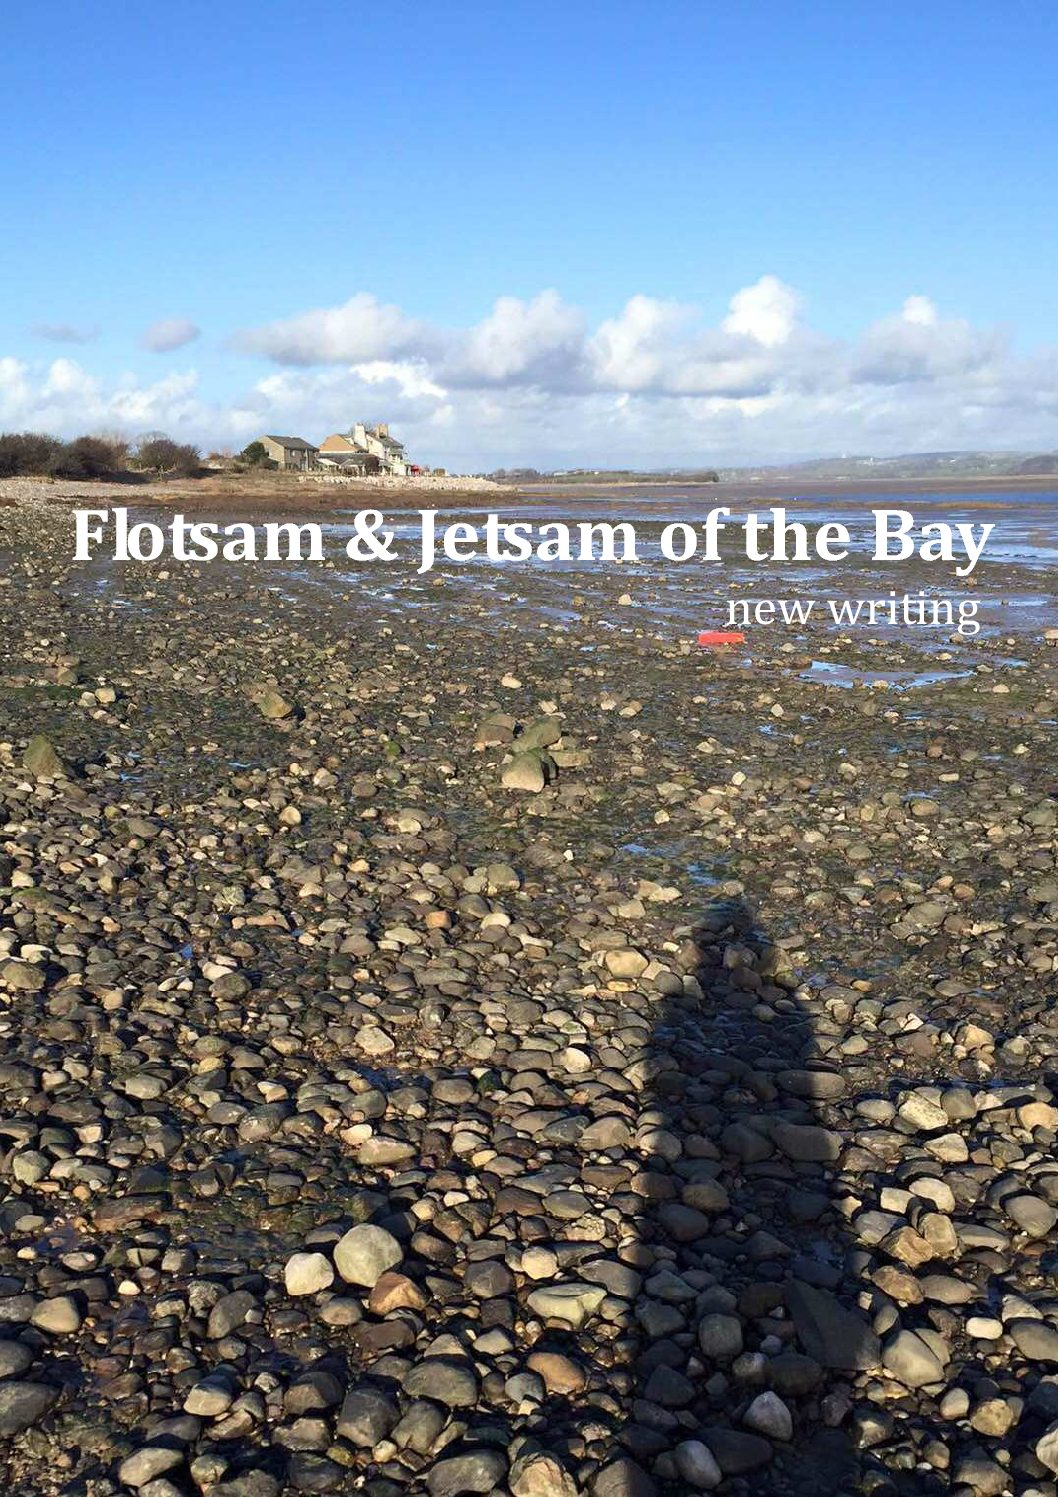 Flotsam and Jetsam of the Bay - new writing